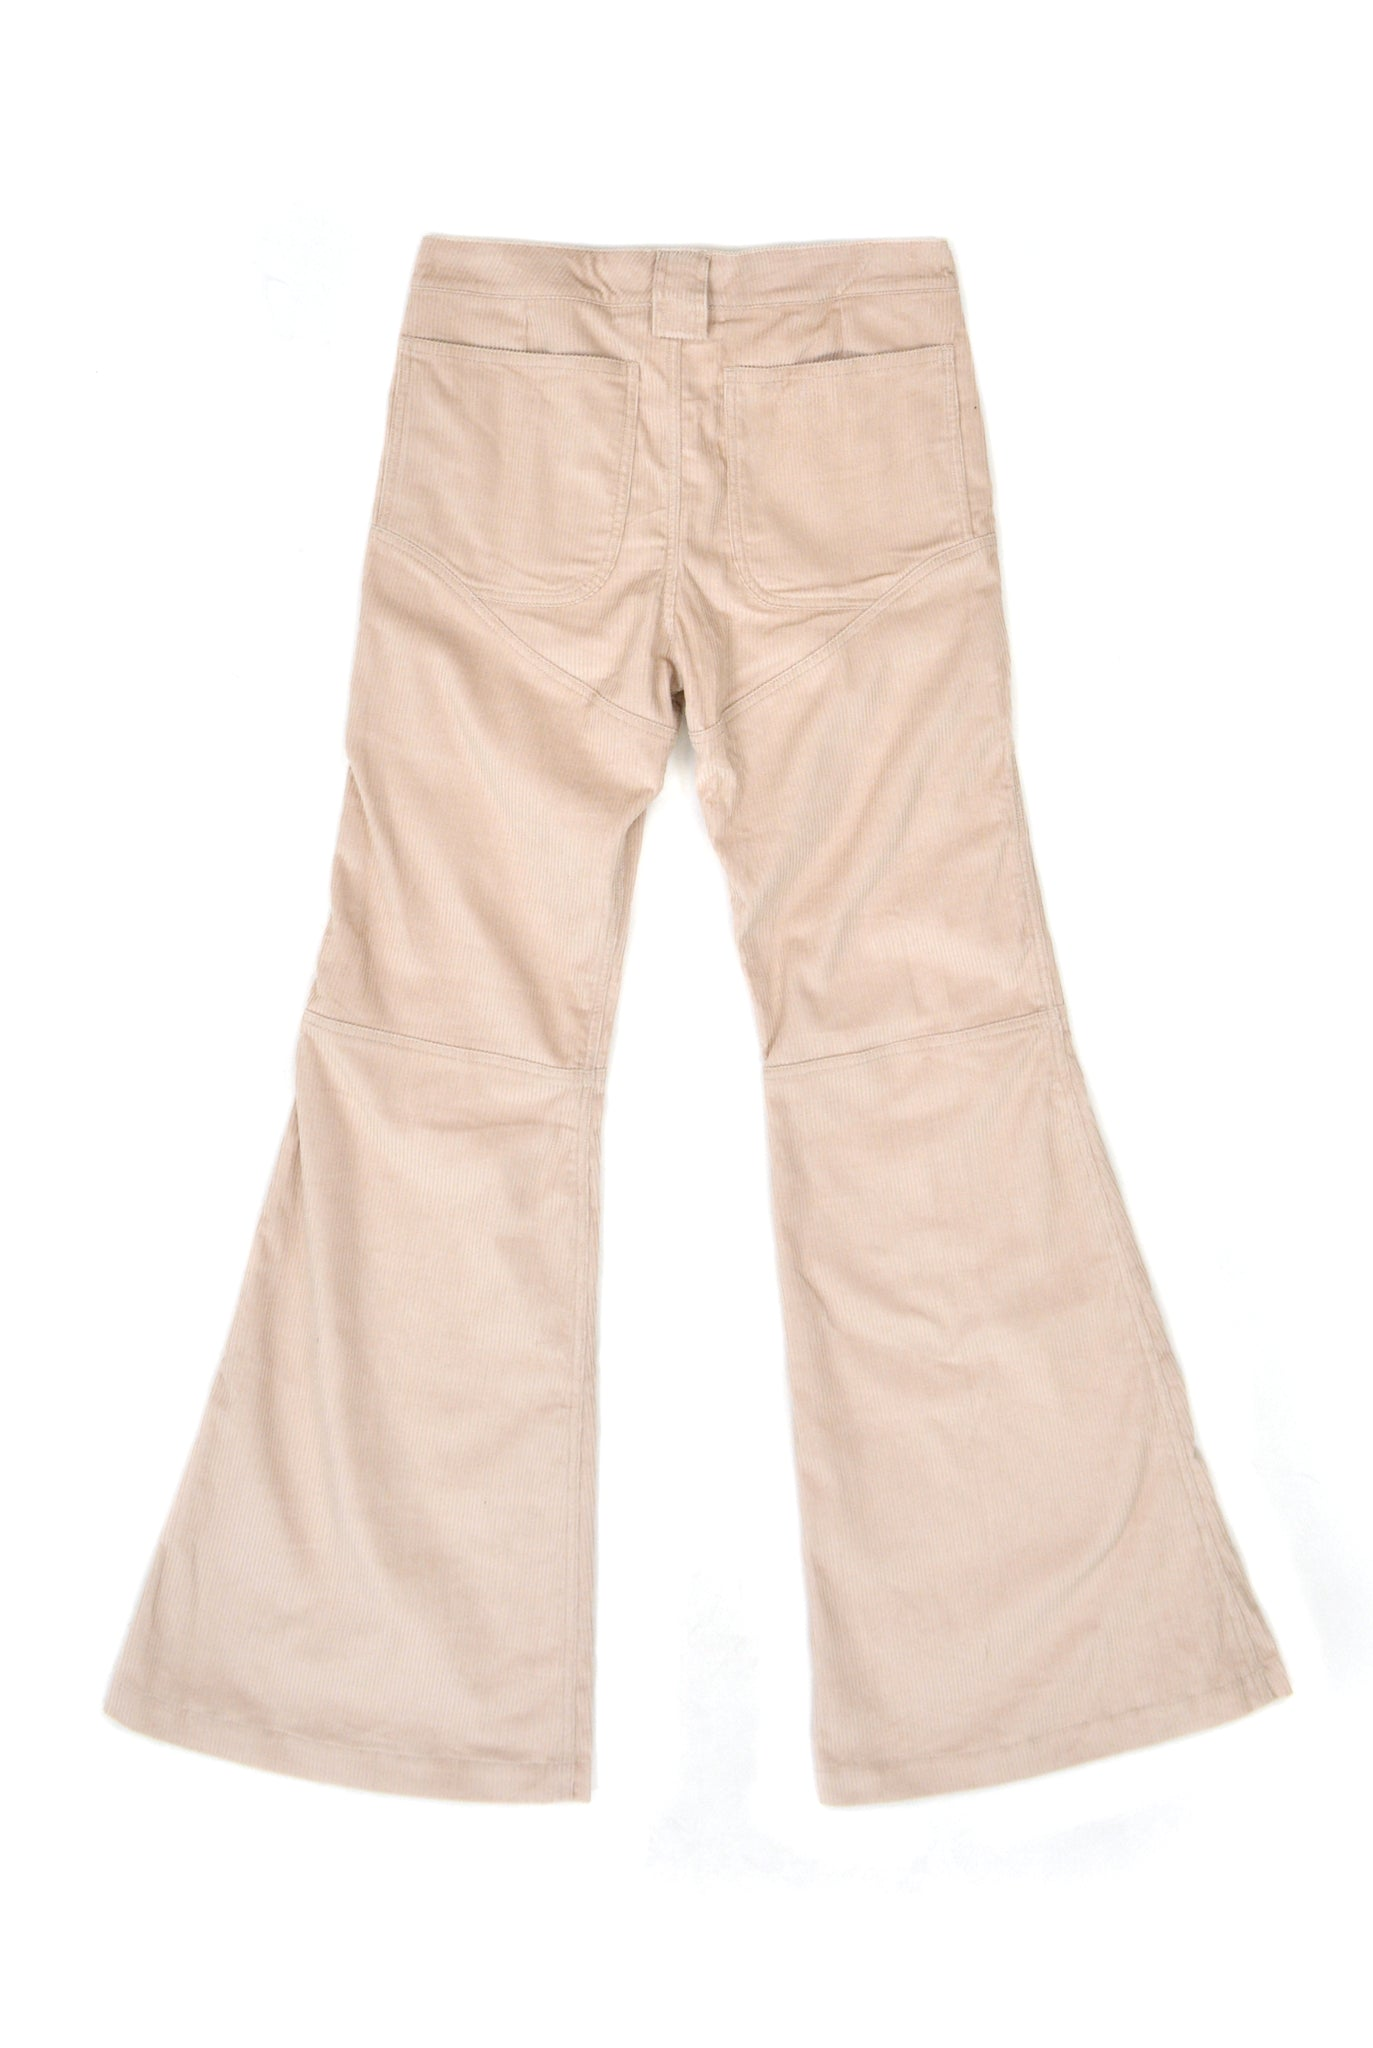 Telfar 3-Panel Boot-Cut Corduroy Pants, Beige